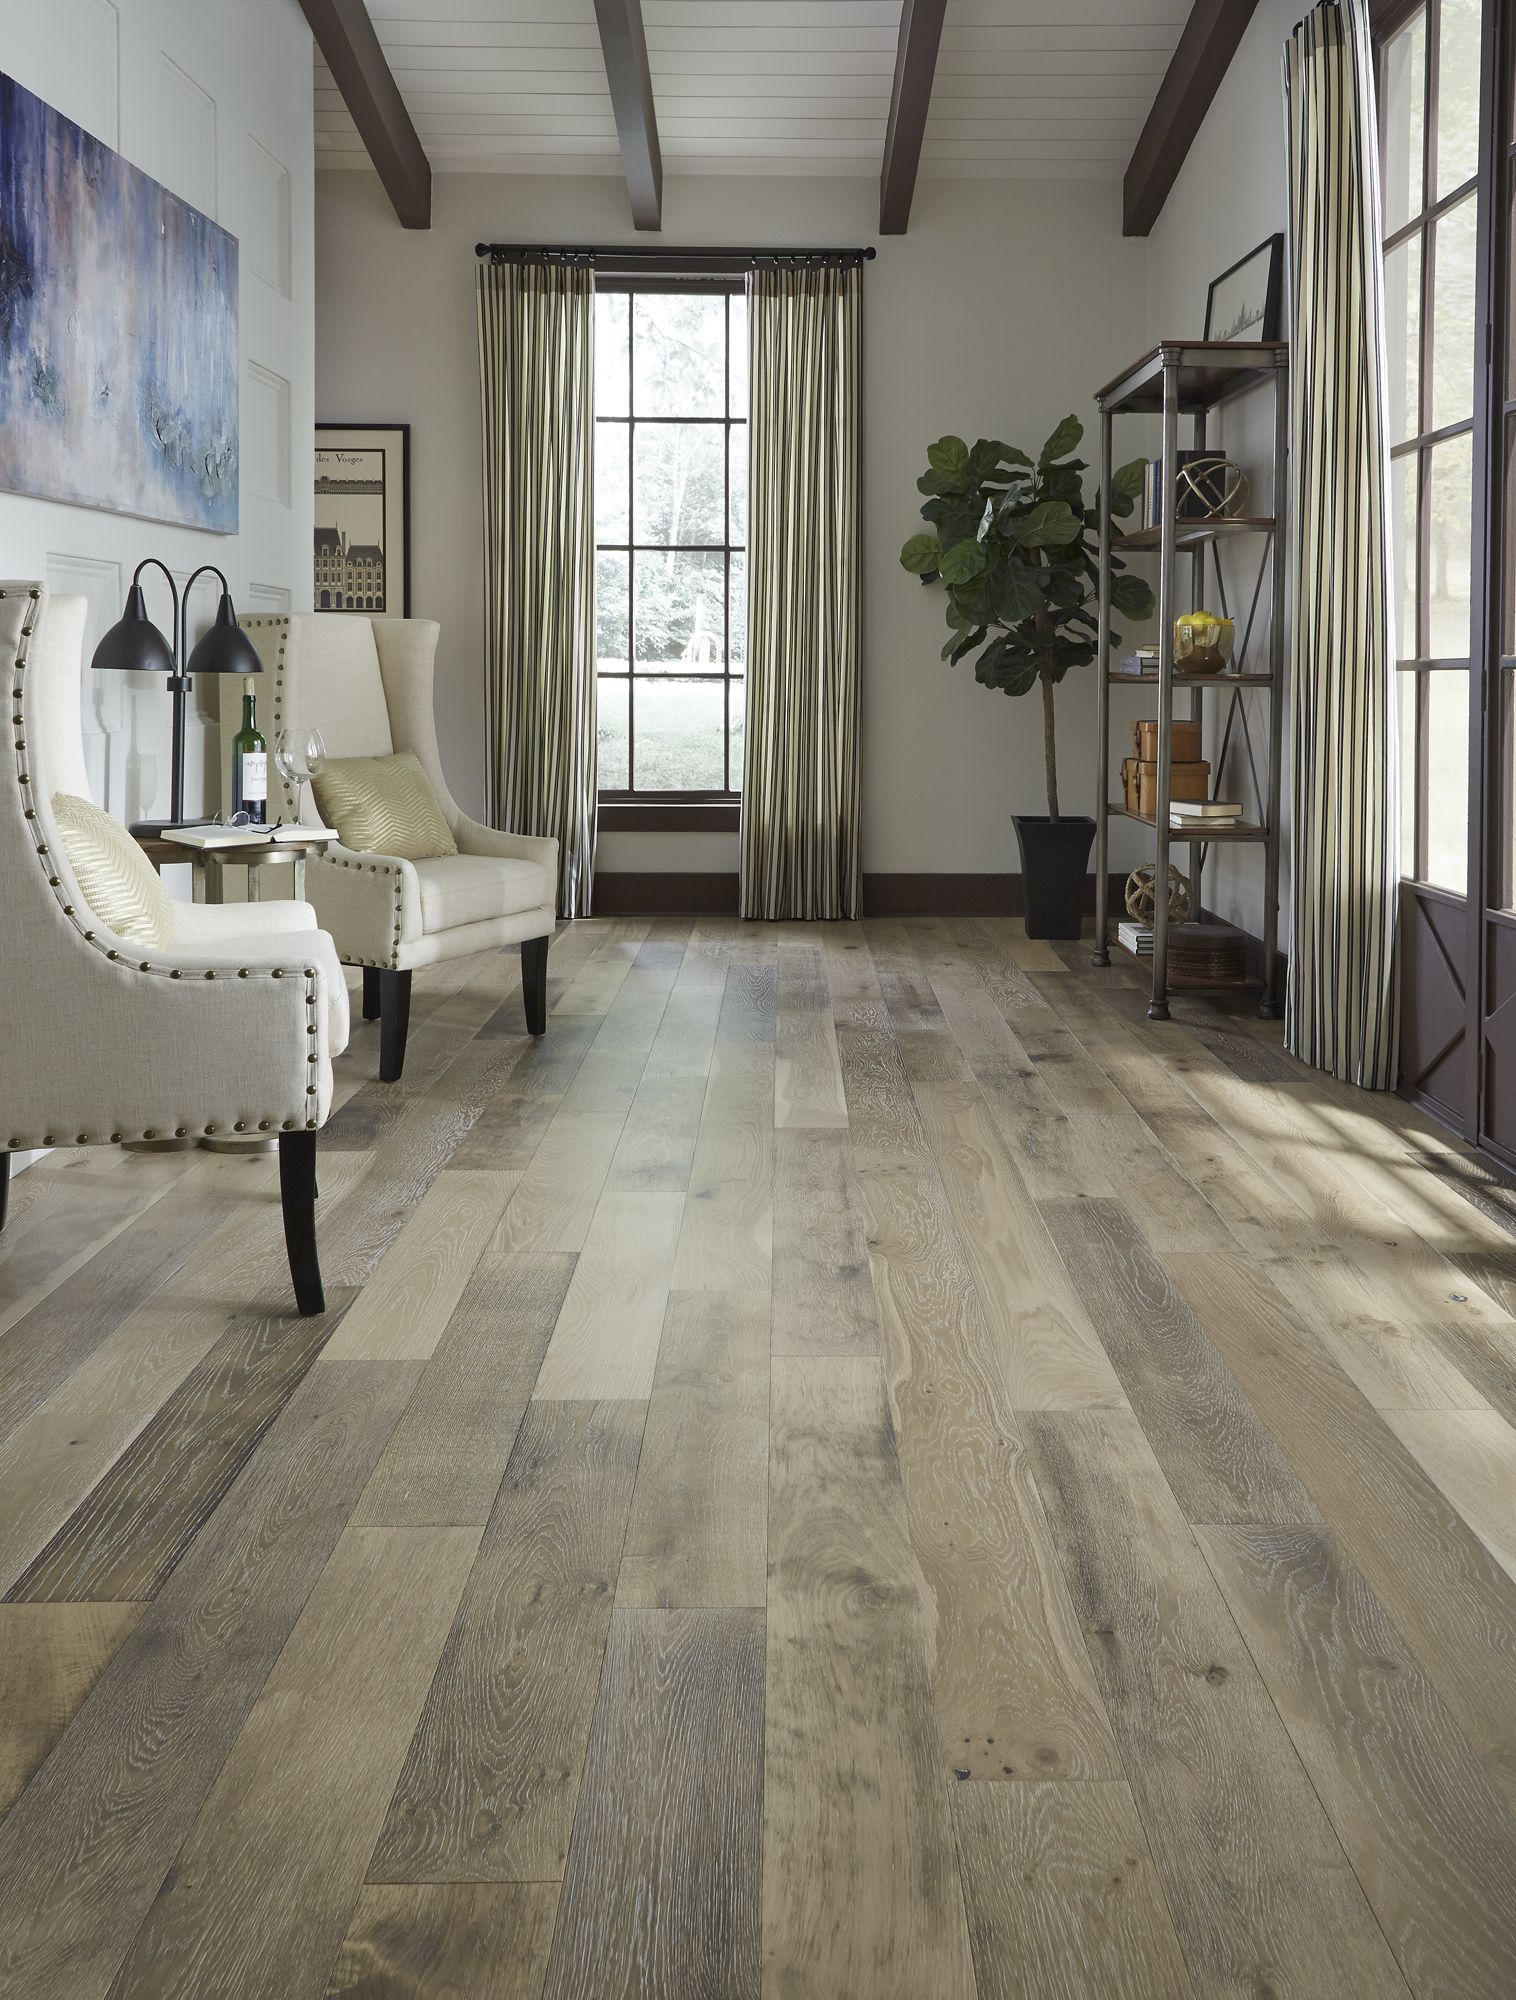 Virginia Mill Works Engineered Vintage French Oak Wirebrushed Flooring 3 8 X 6 3 8 2 99 Sqft Lumber Liquidators Distressed Wood Floors Home Engineered Wood Floors